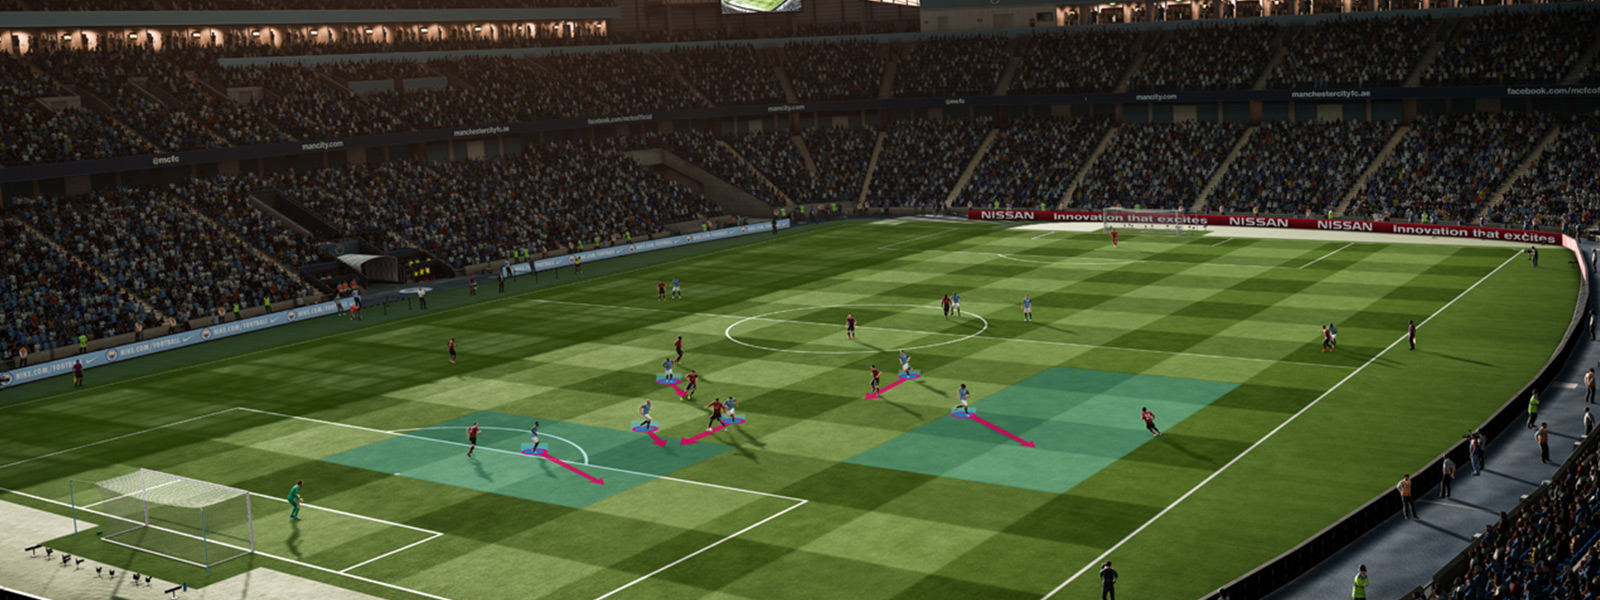 Over field view of a FIFA game